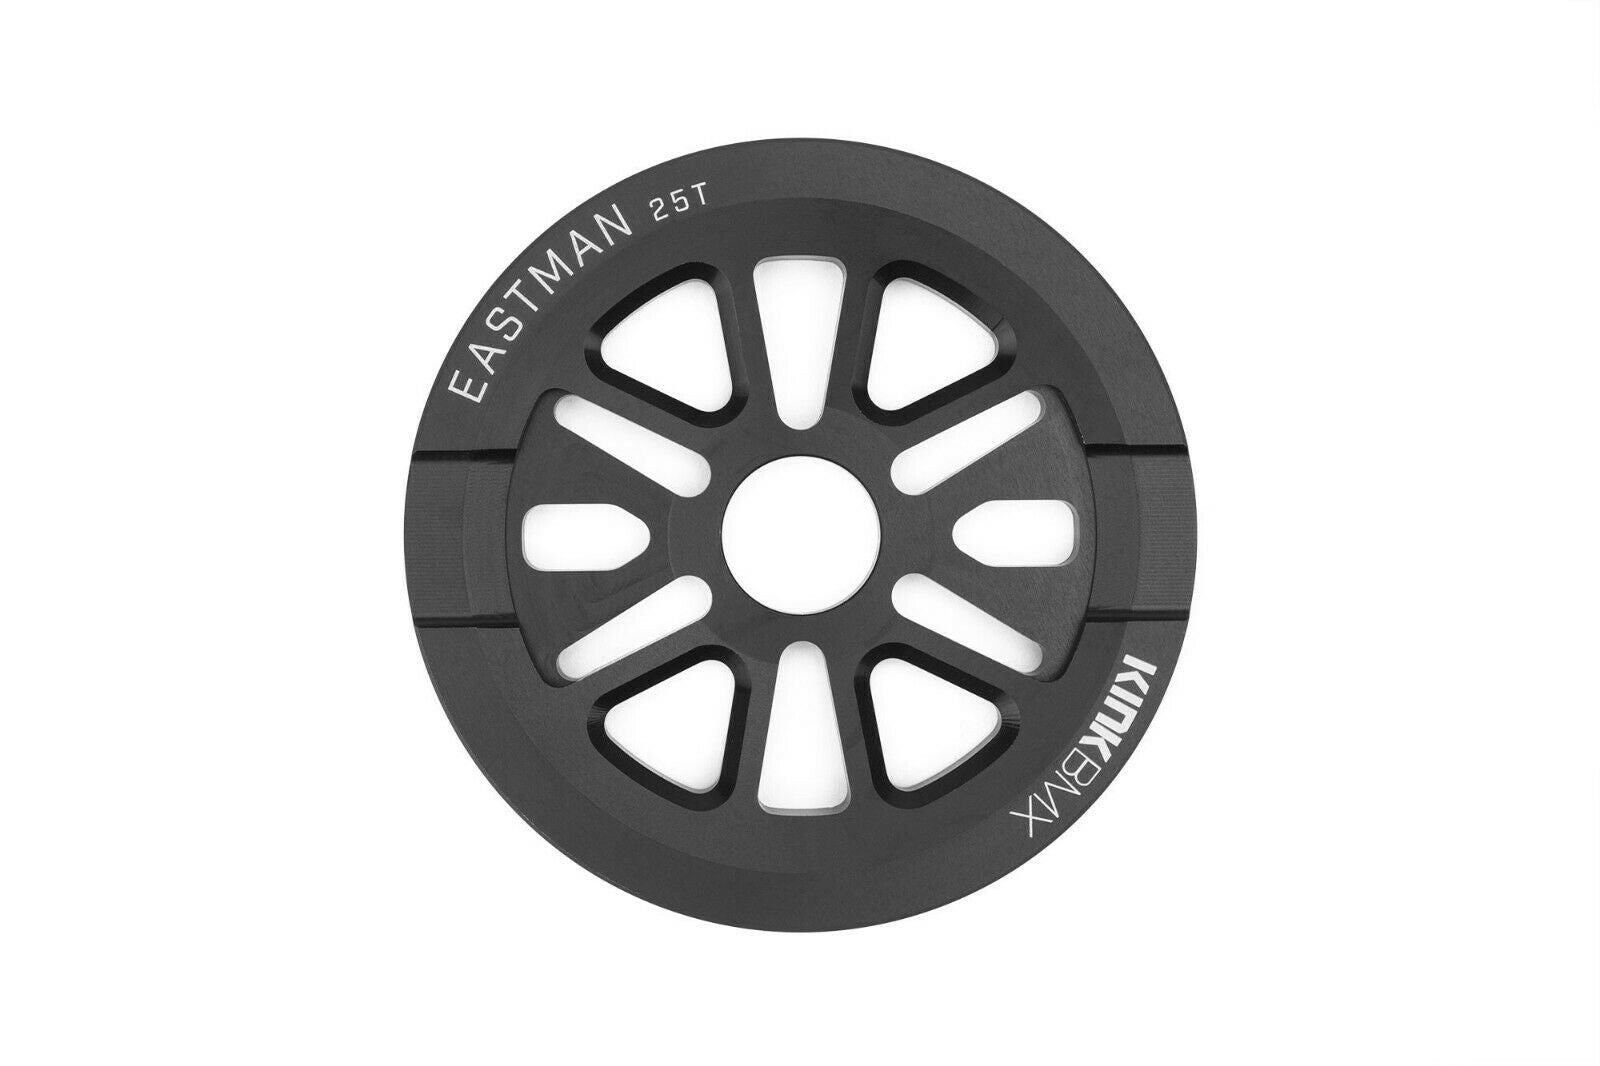 Kink BMX 28t Eastman Guard Sprocket / Chainwheel - Matte Black